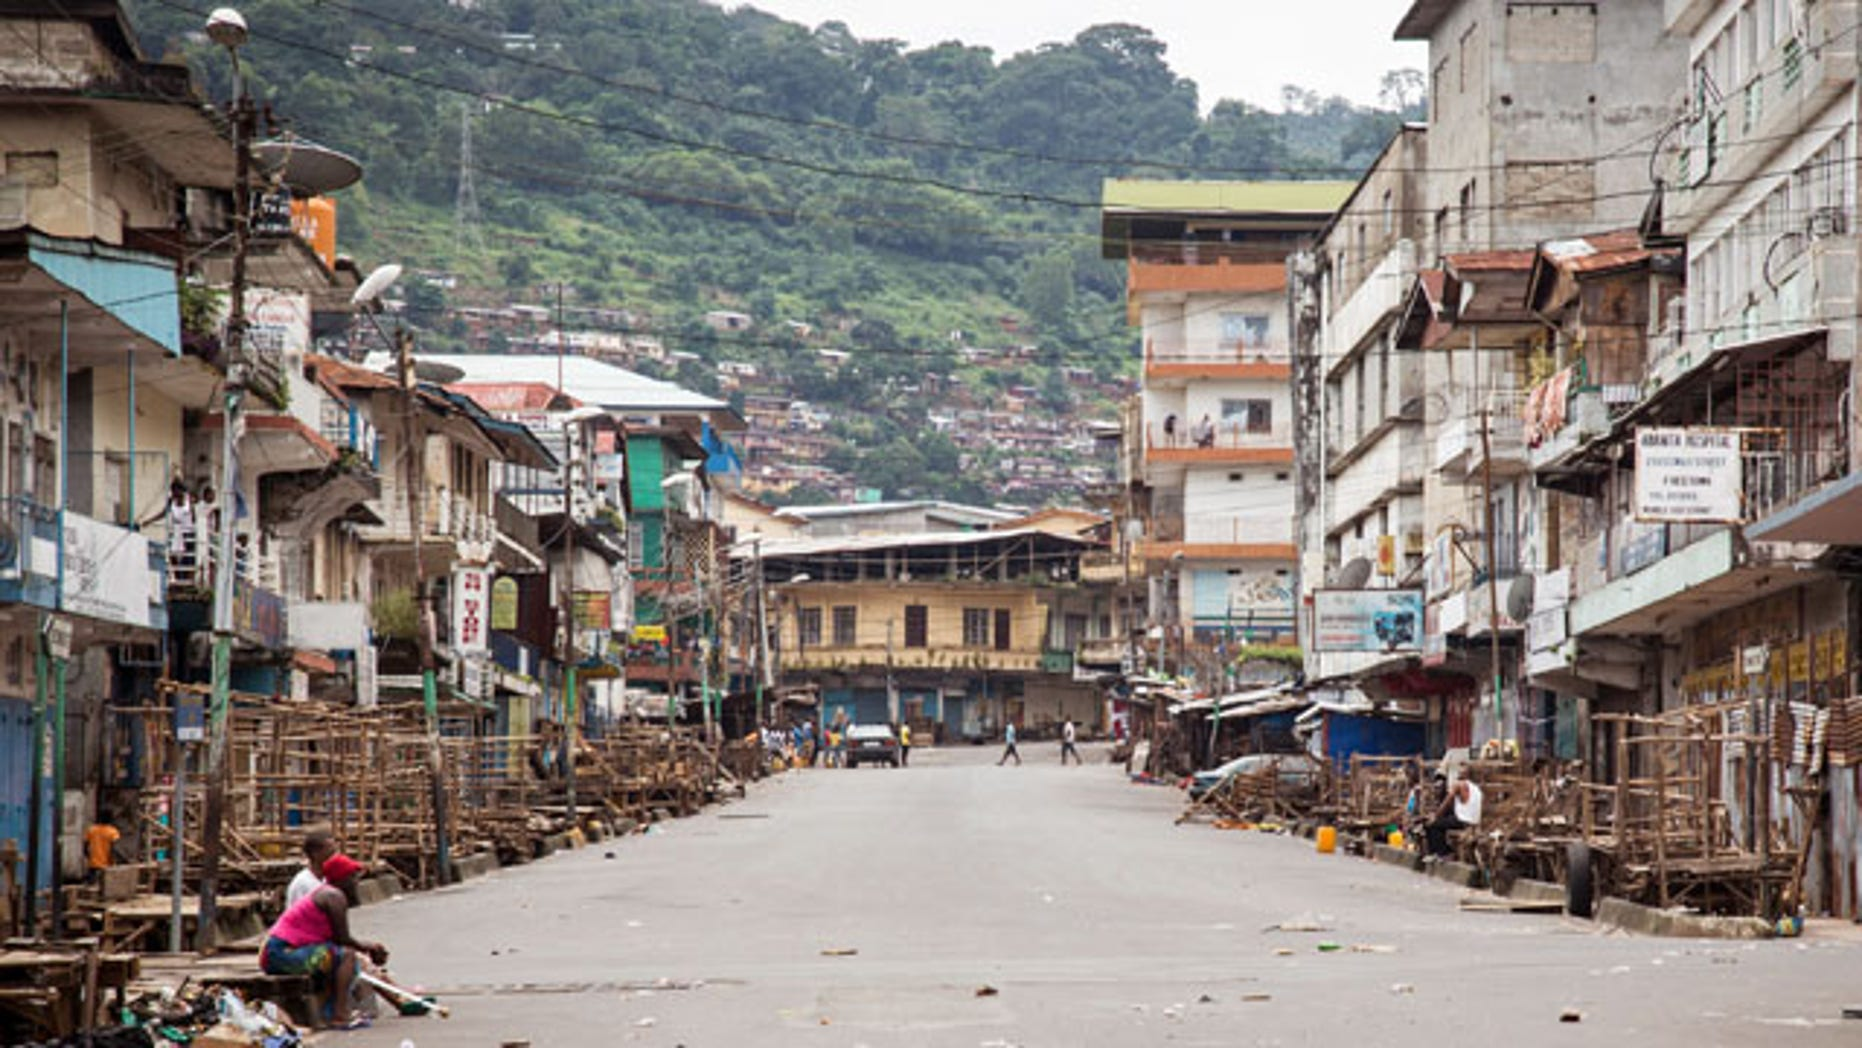 September 21, 2014: A few people are seen during a three-day lockdown to prevent the spread of the Ebola virus, in Freetown, Sierra Leone. (AP Photo/Michael Duff)